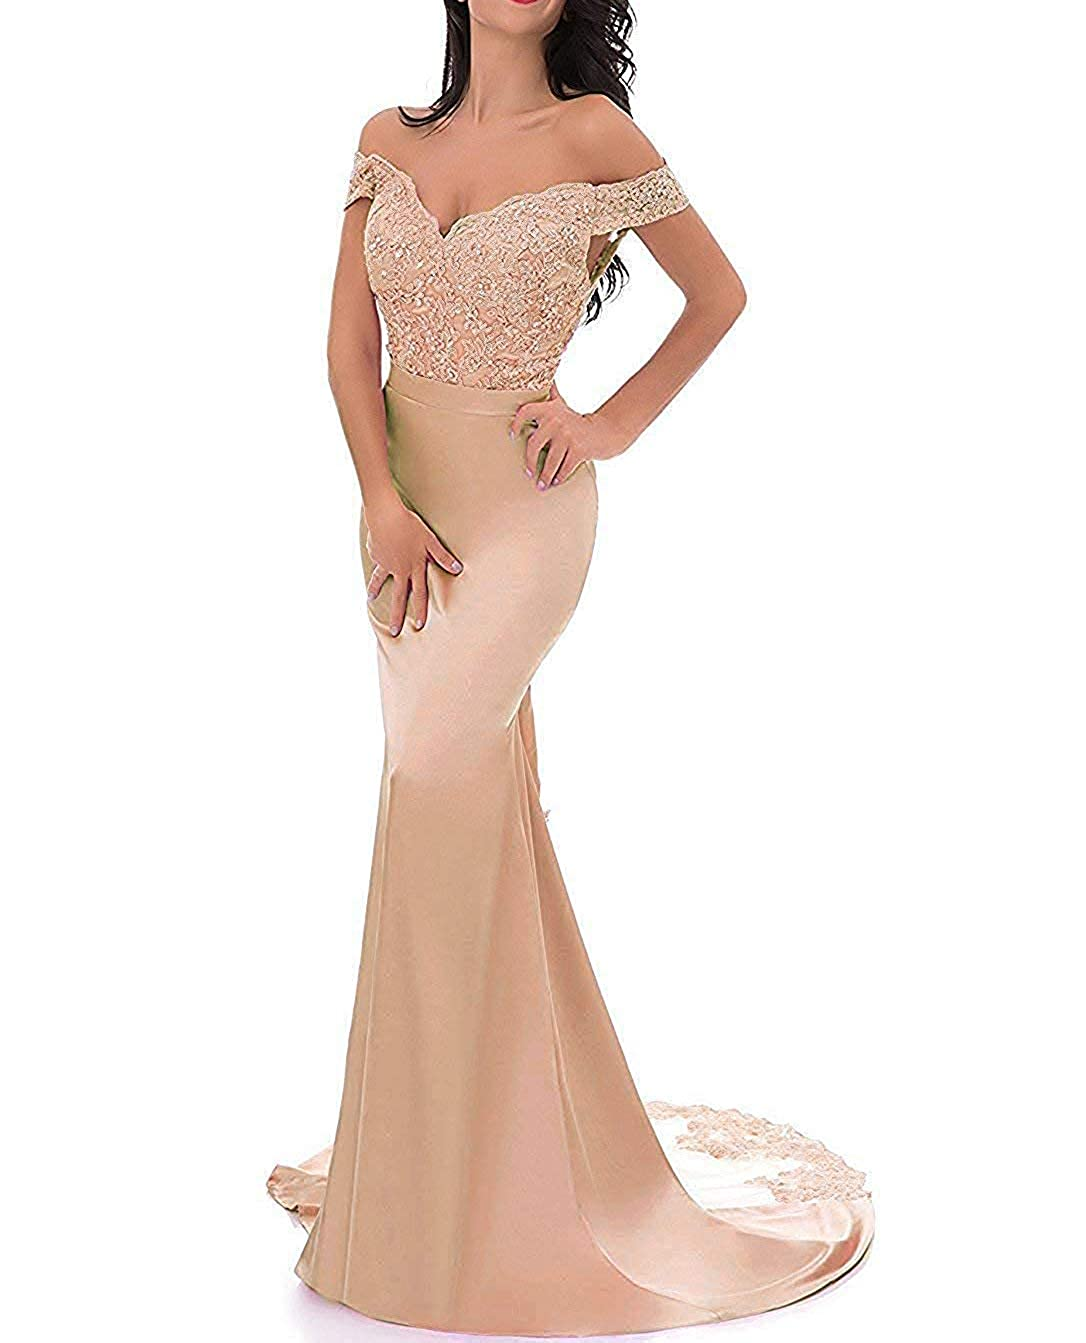 Champagne PearlBridal VNeck Off Shoulder Mermaid Bridesmaid Dresses Lace Long Evening Formal Gown